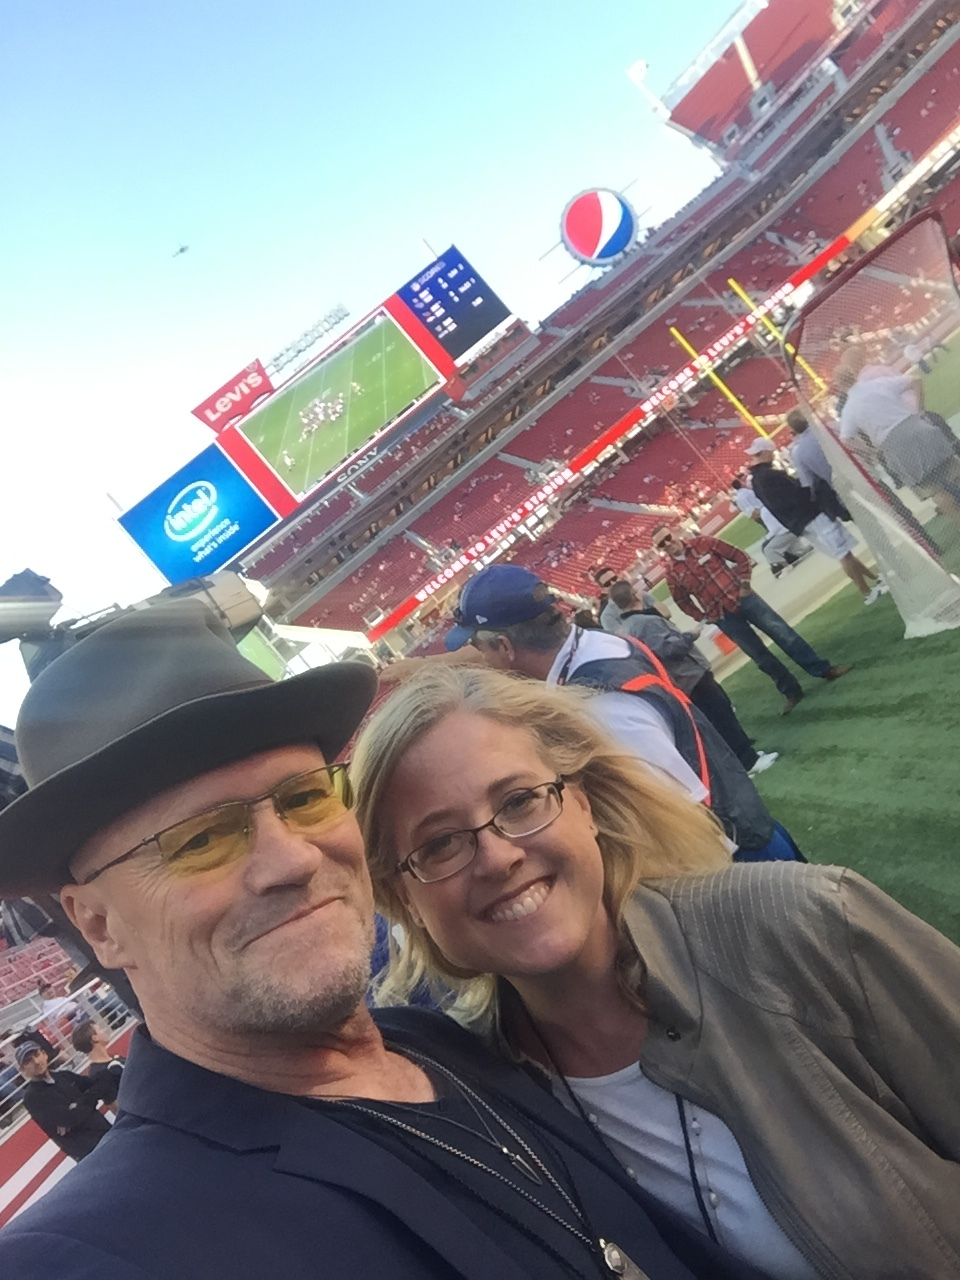 49er Game with actor, Michael Rooker